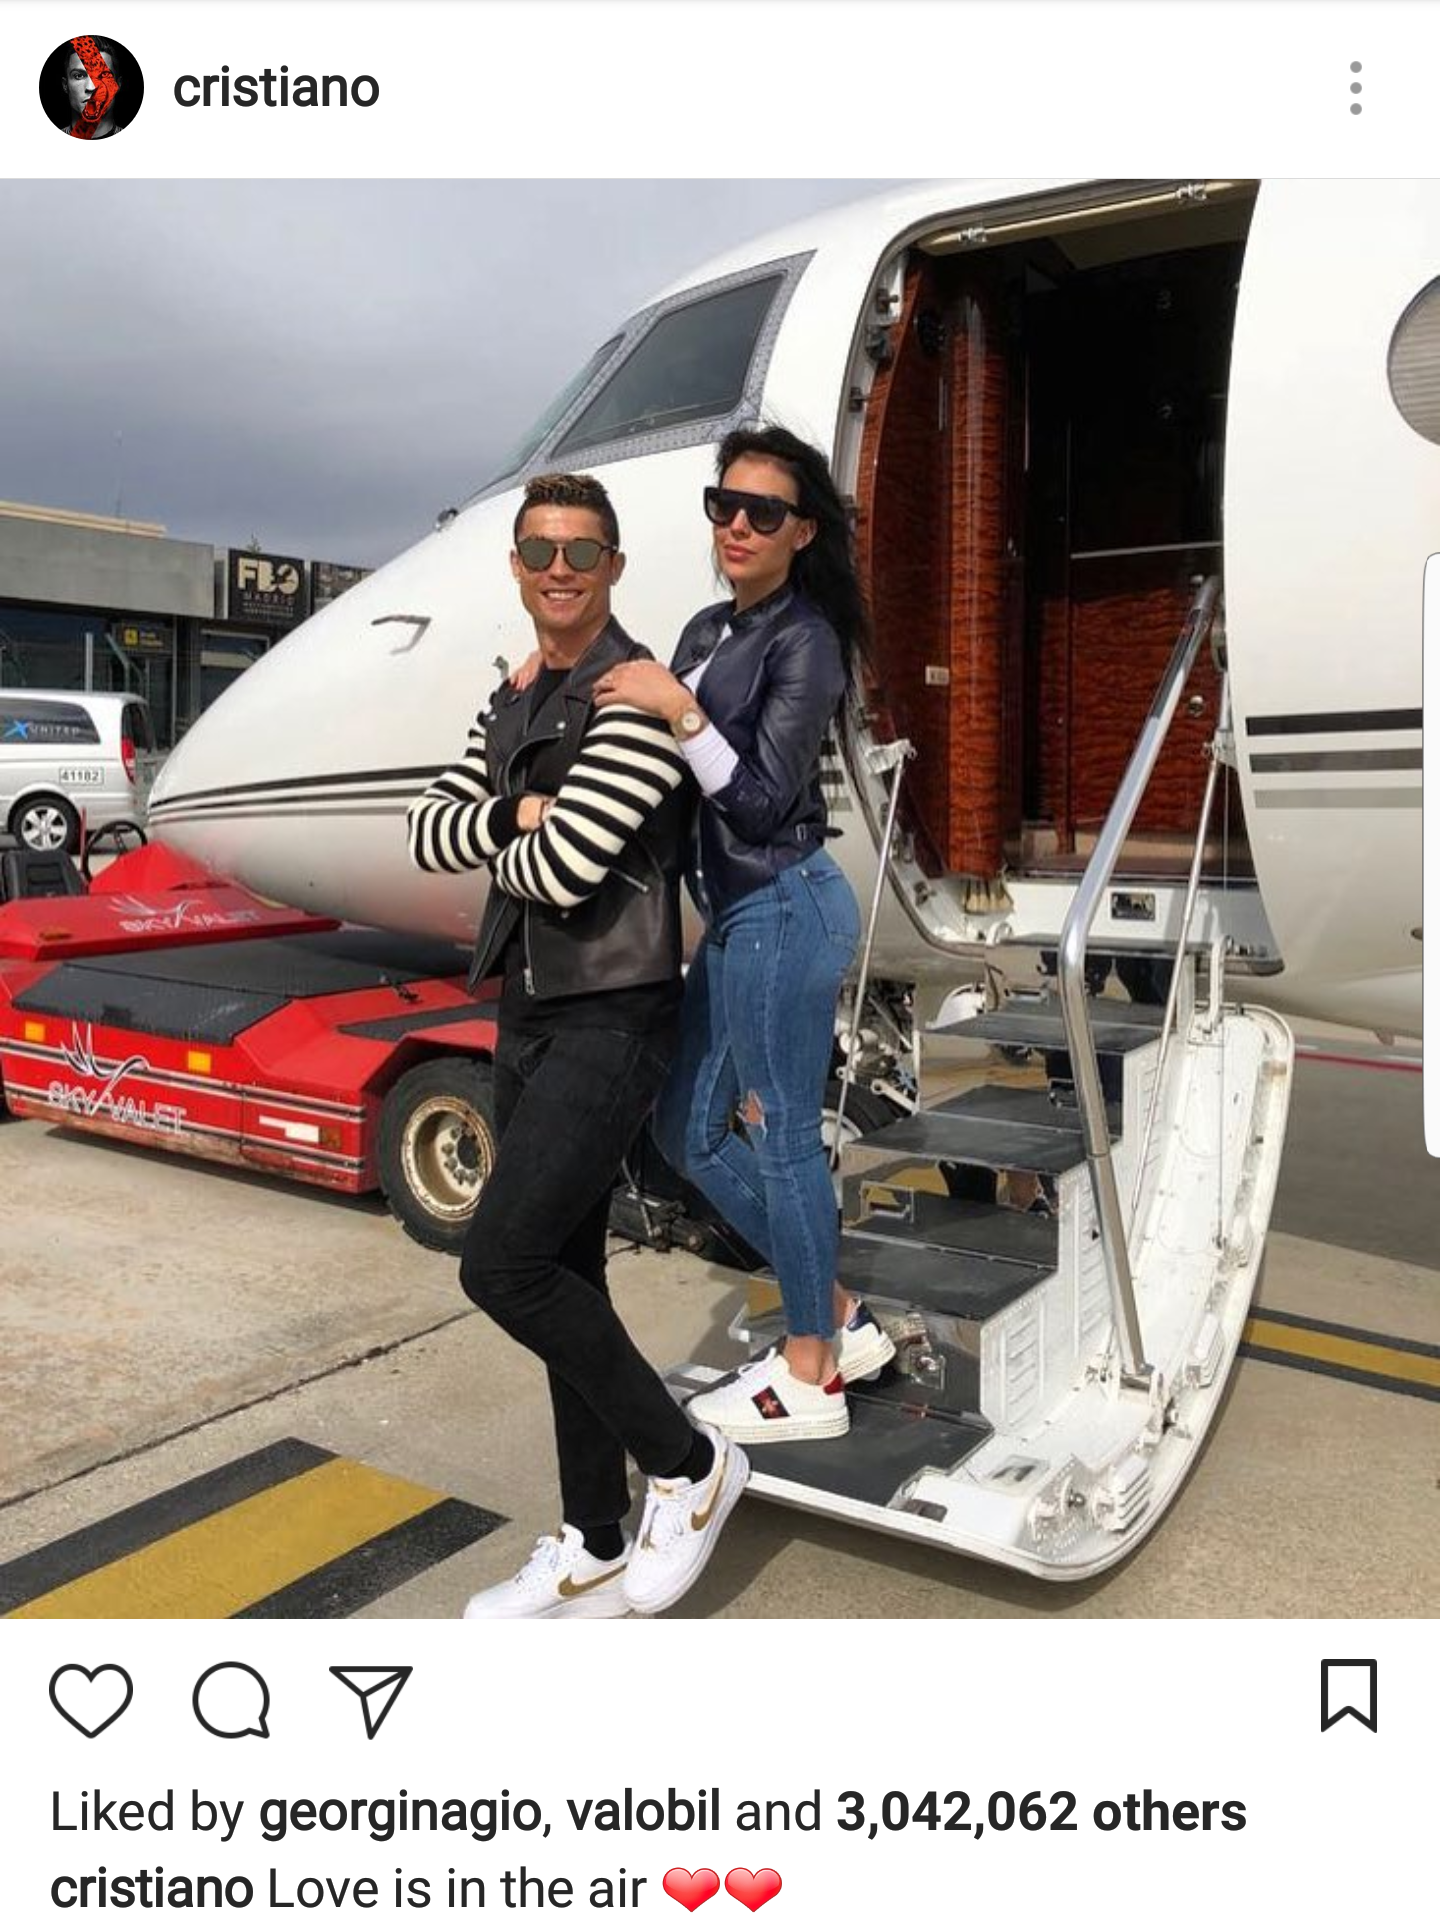 Love is in the air - Cristiano Ronaldo and  girlfriend stylish in new photo